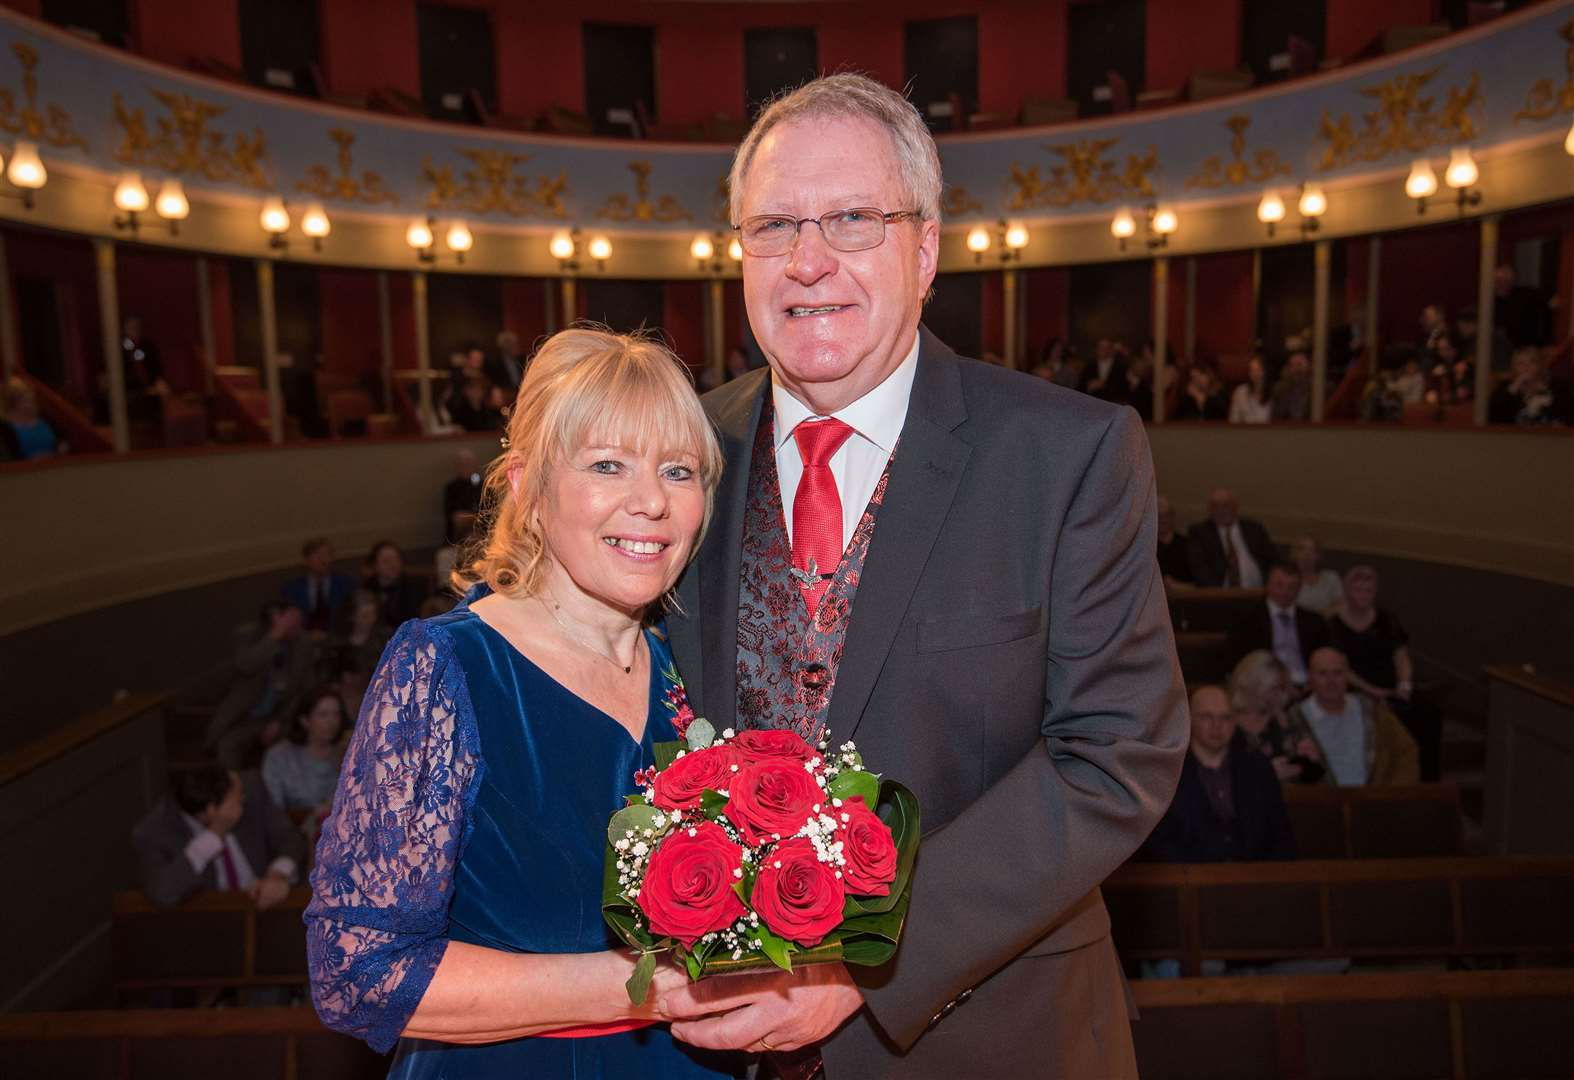 How this Bury St Edmunds couple found love again through volunteering